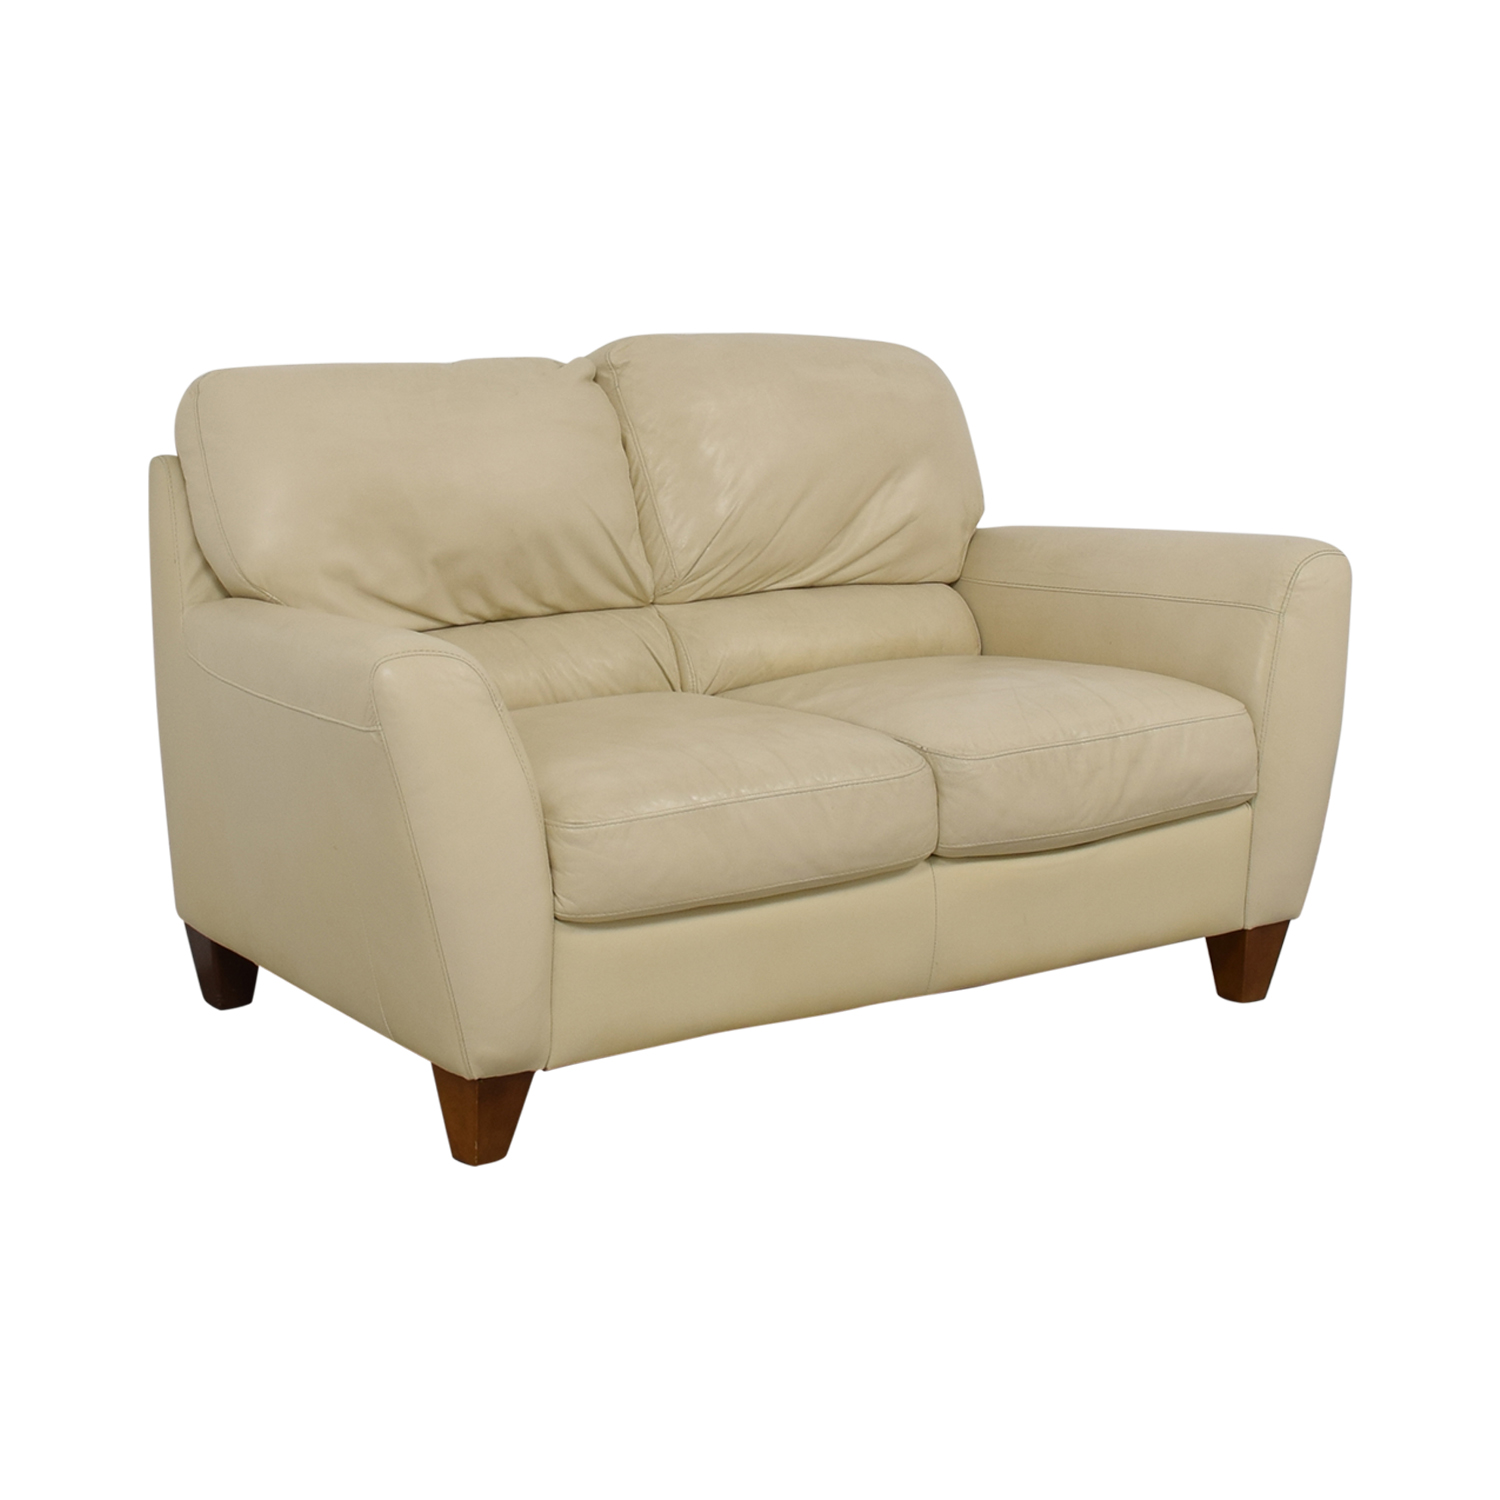 Macy's White Two-Cushion Loveseat sale